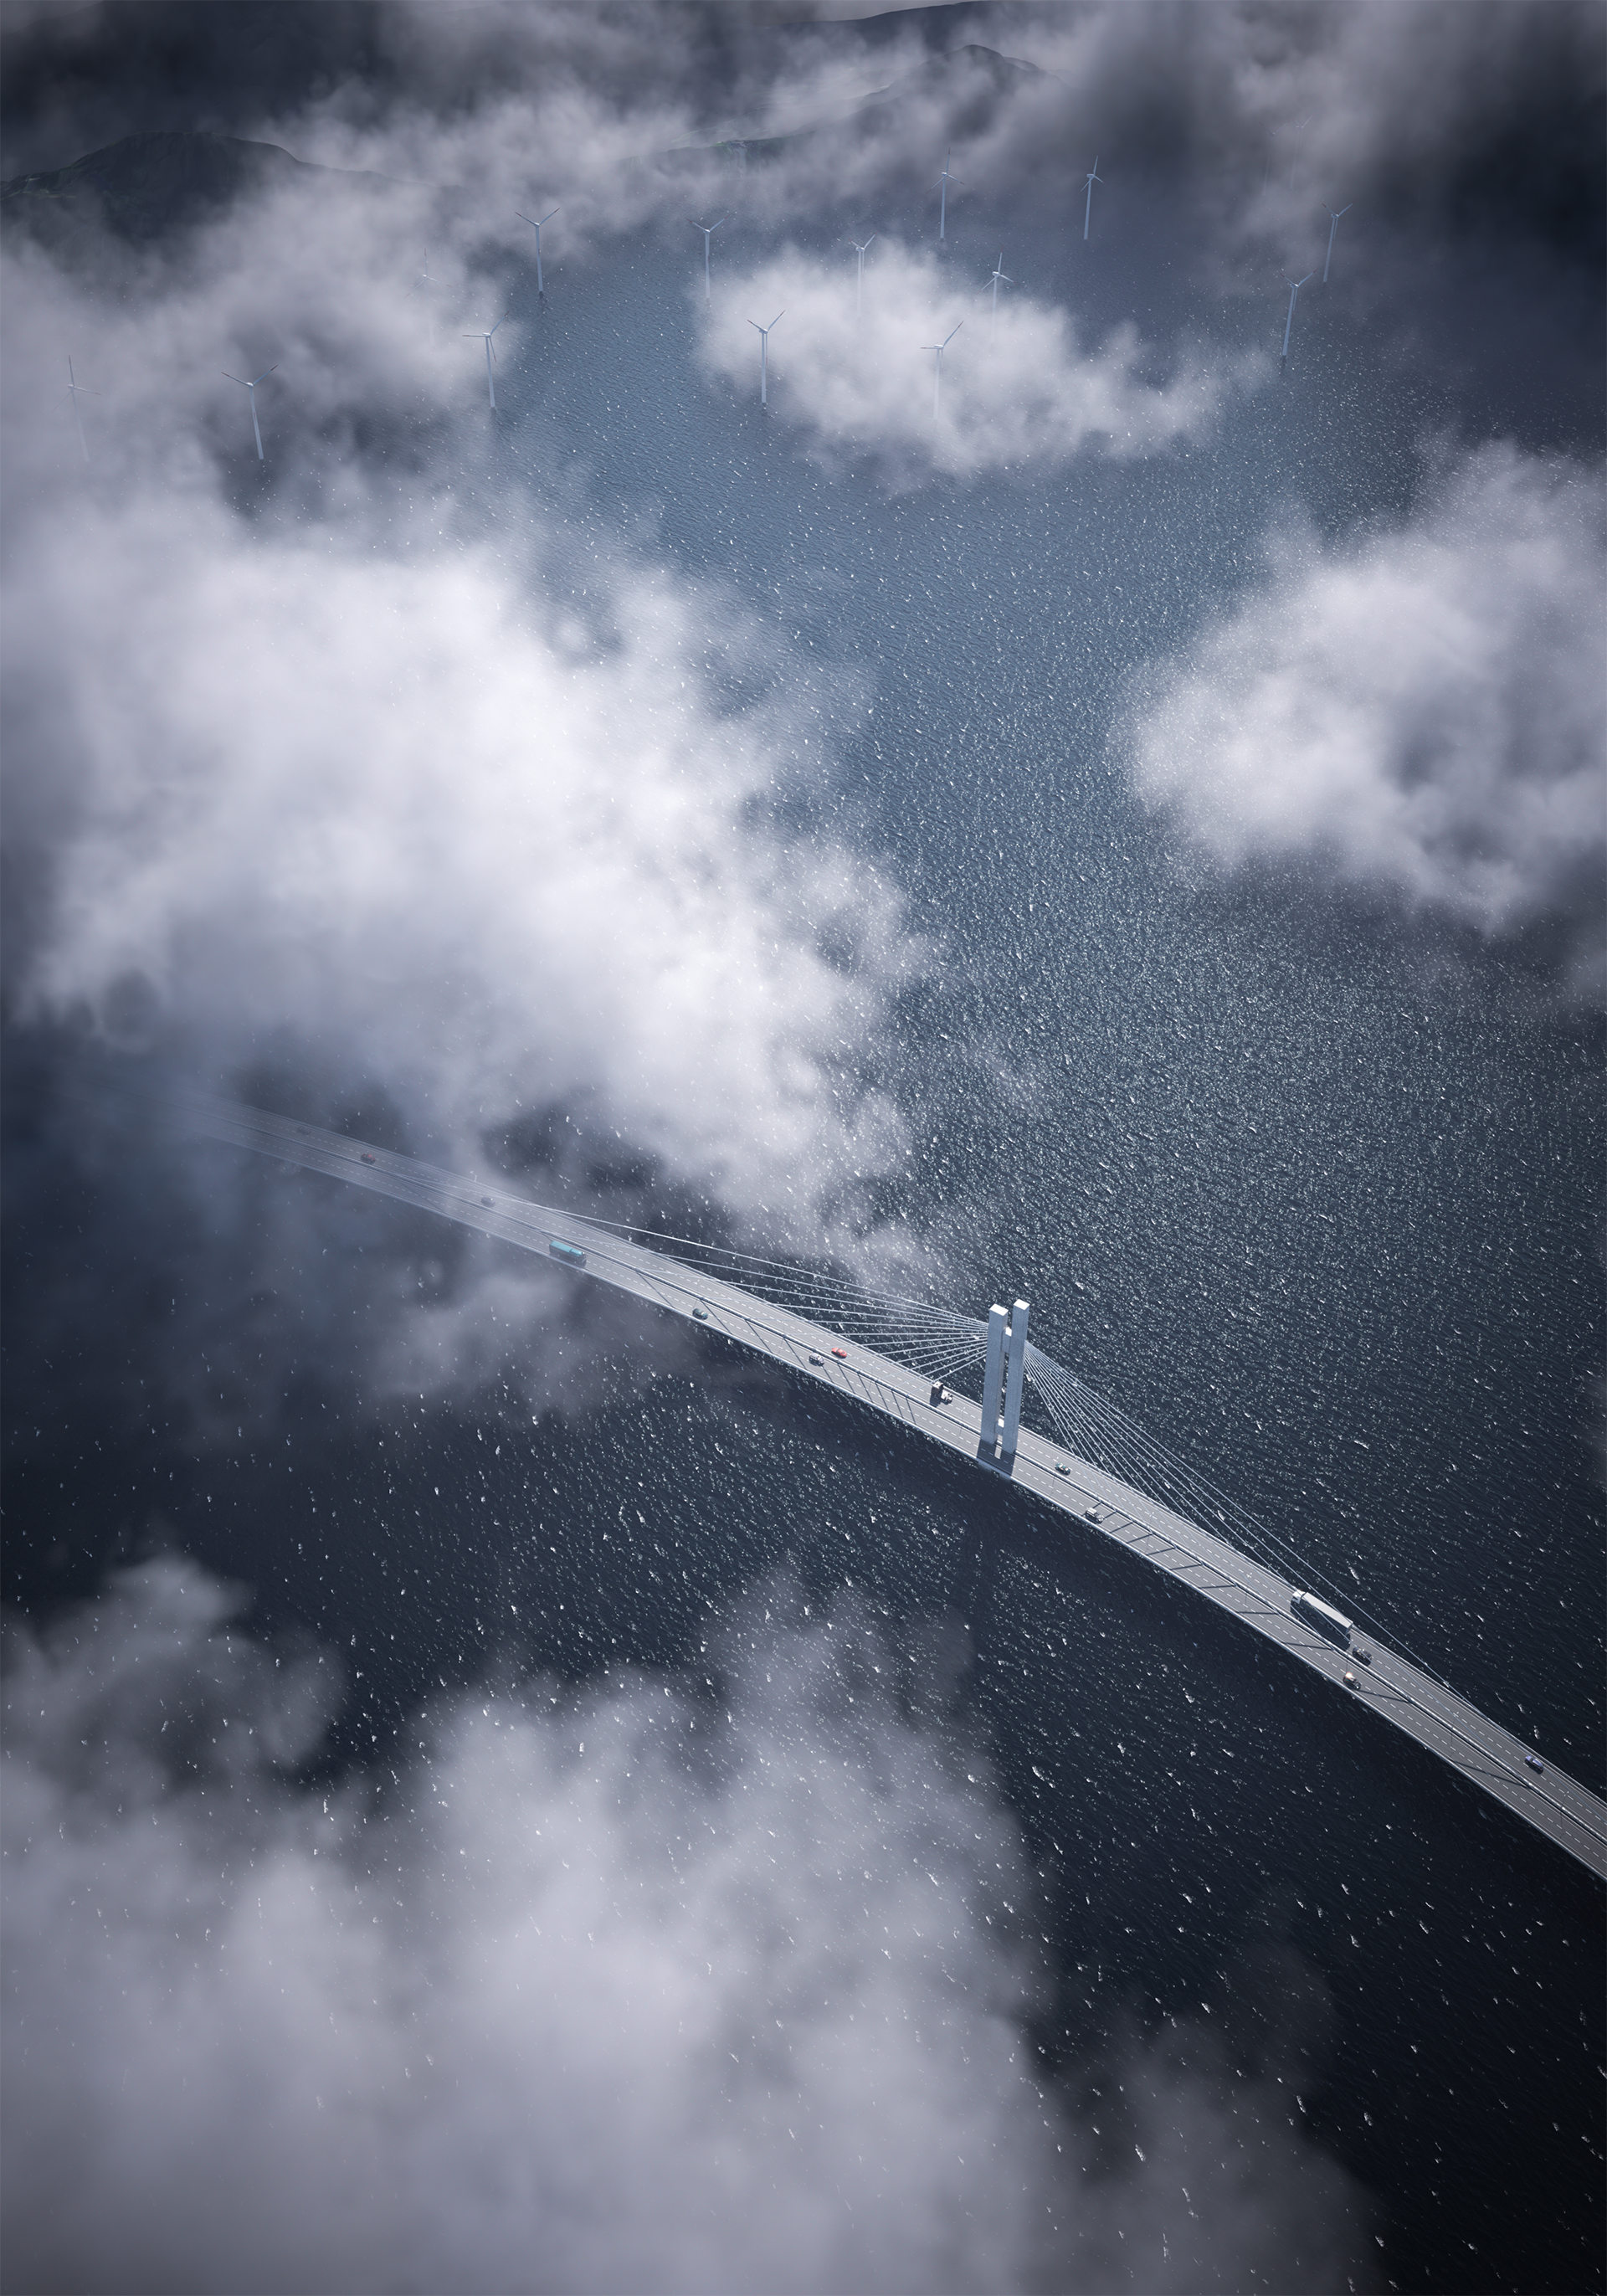 On the Water Bridge - concept design